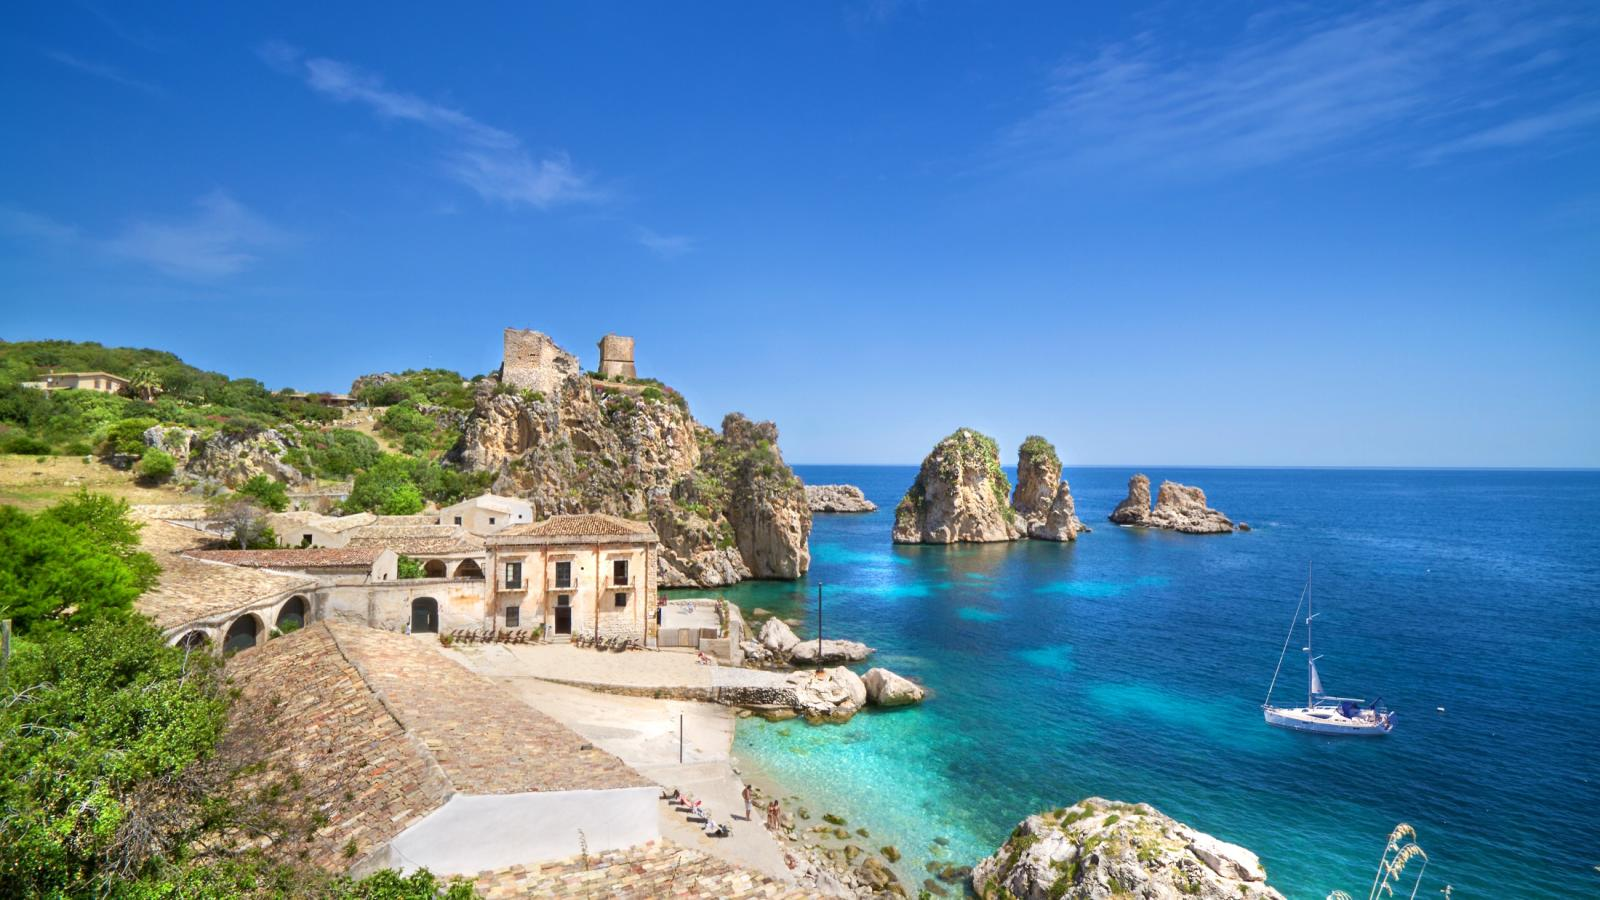 Airports of Sicily: Name, Location and General Information 73